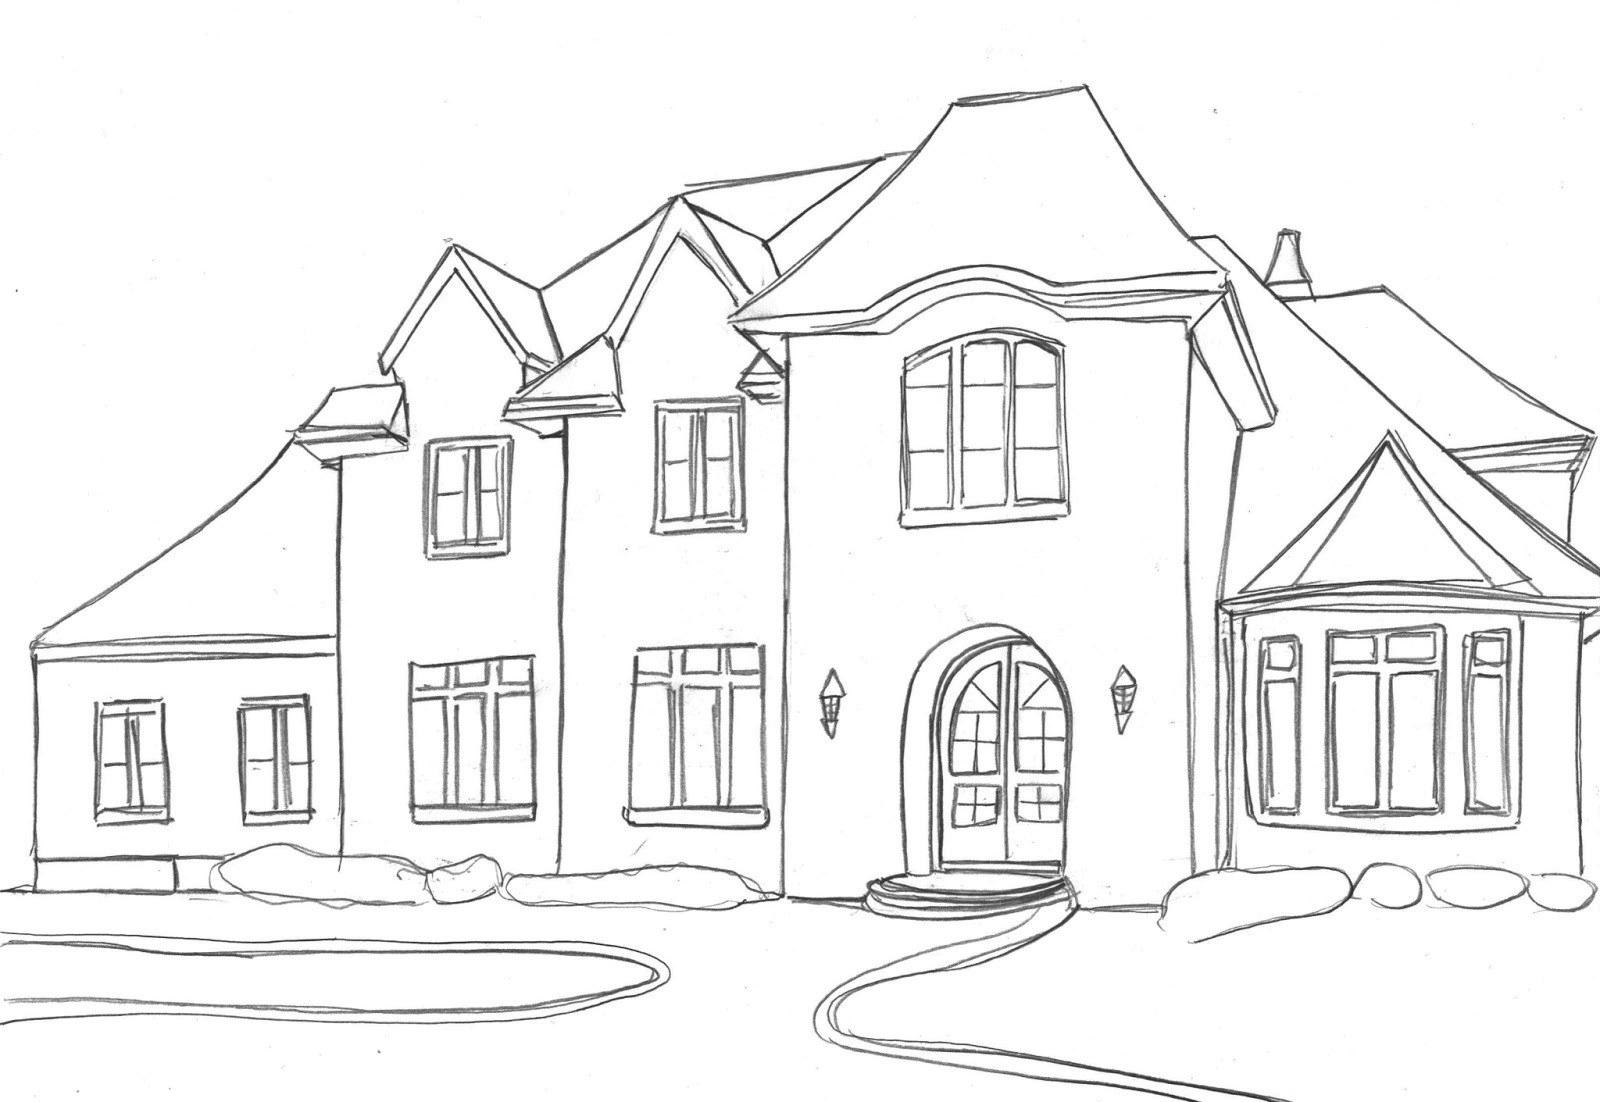 House drawings easy kb jpeg house drawing